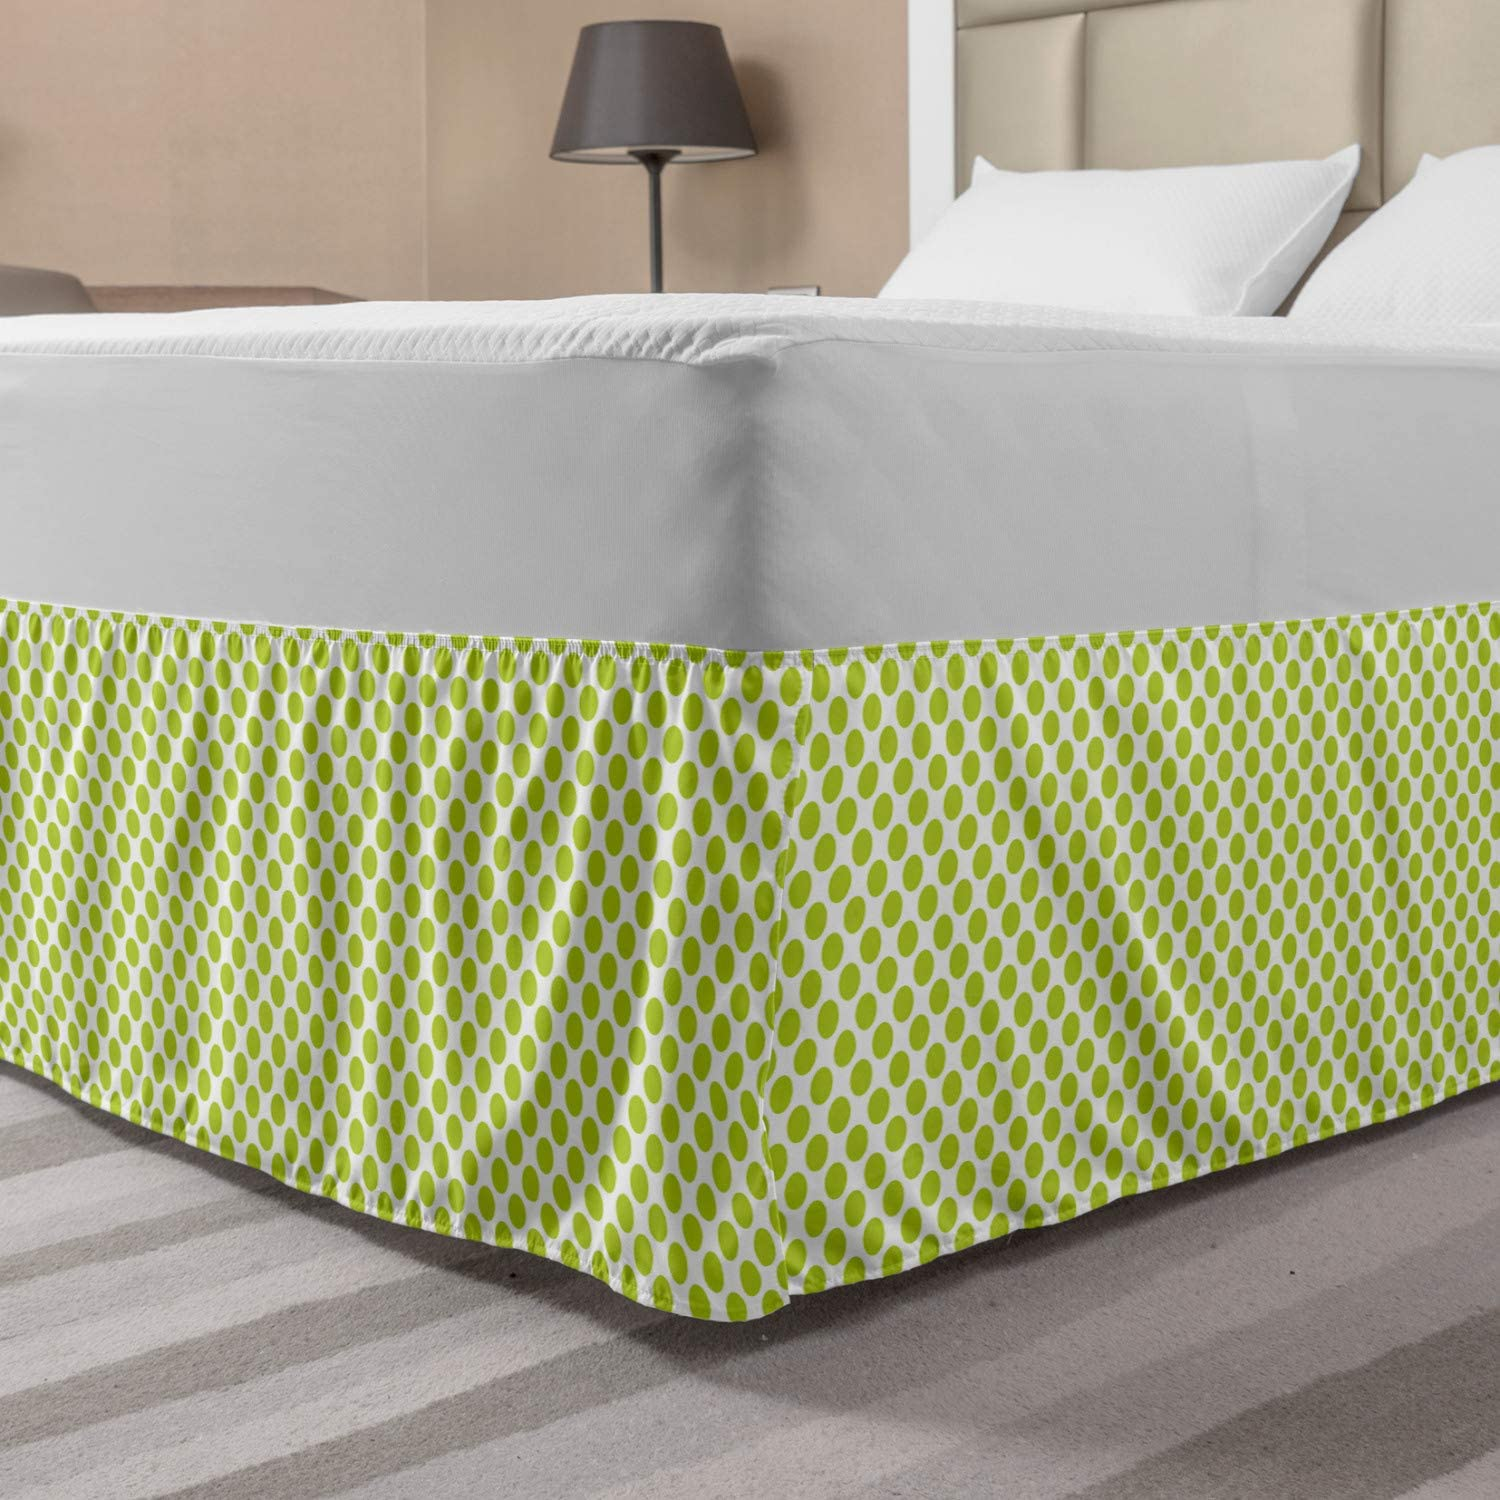 Ambesonne Lime Green Bedskirt, Nostalgic Polka Dots Style Large Circles Girlish Vintage Rounds Pattern, Bedroom Decor Wrap Around Elastic Bed Skirt Gathered Design, Queen, Apple Green